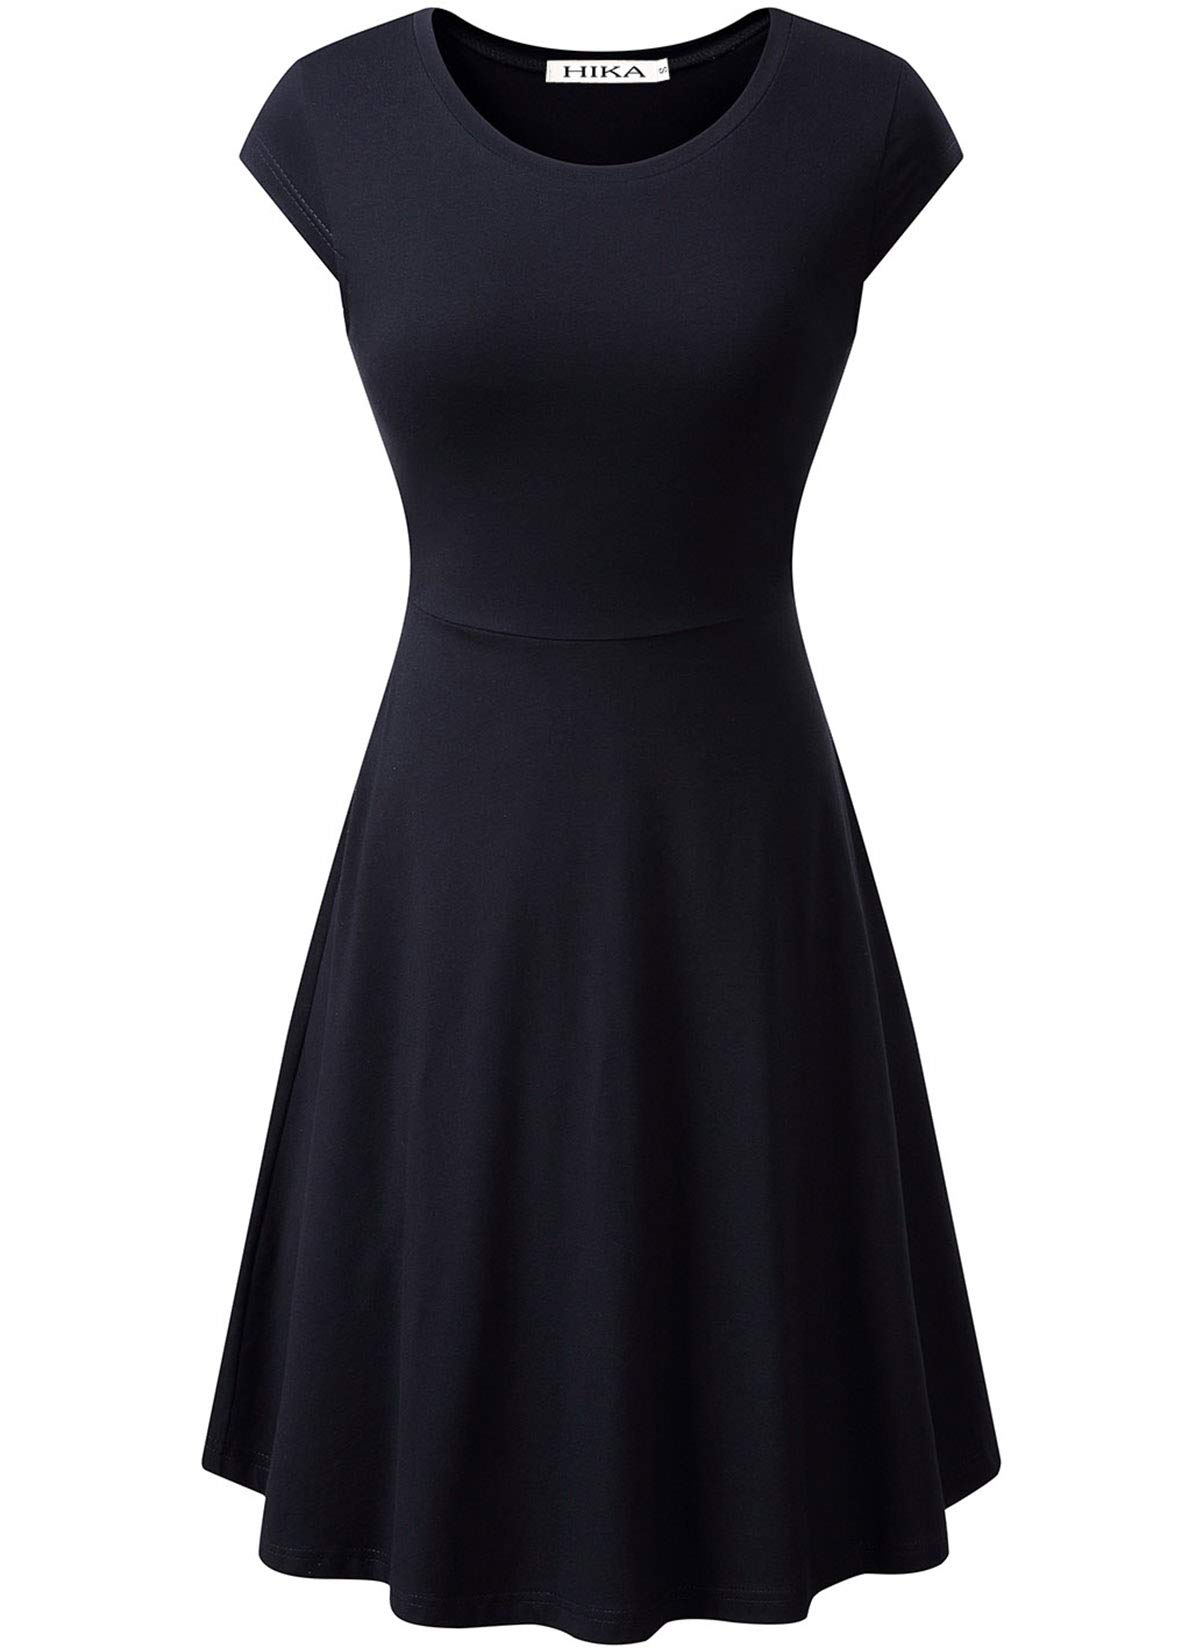 Available at Amazon: HIKA Women's Casual Elegant A Line Short Cap Sleeve Round Neck Dress